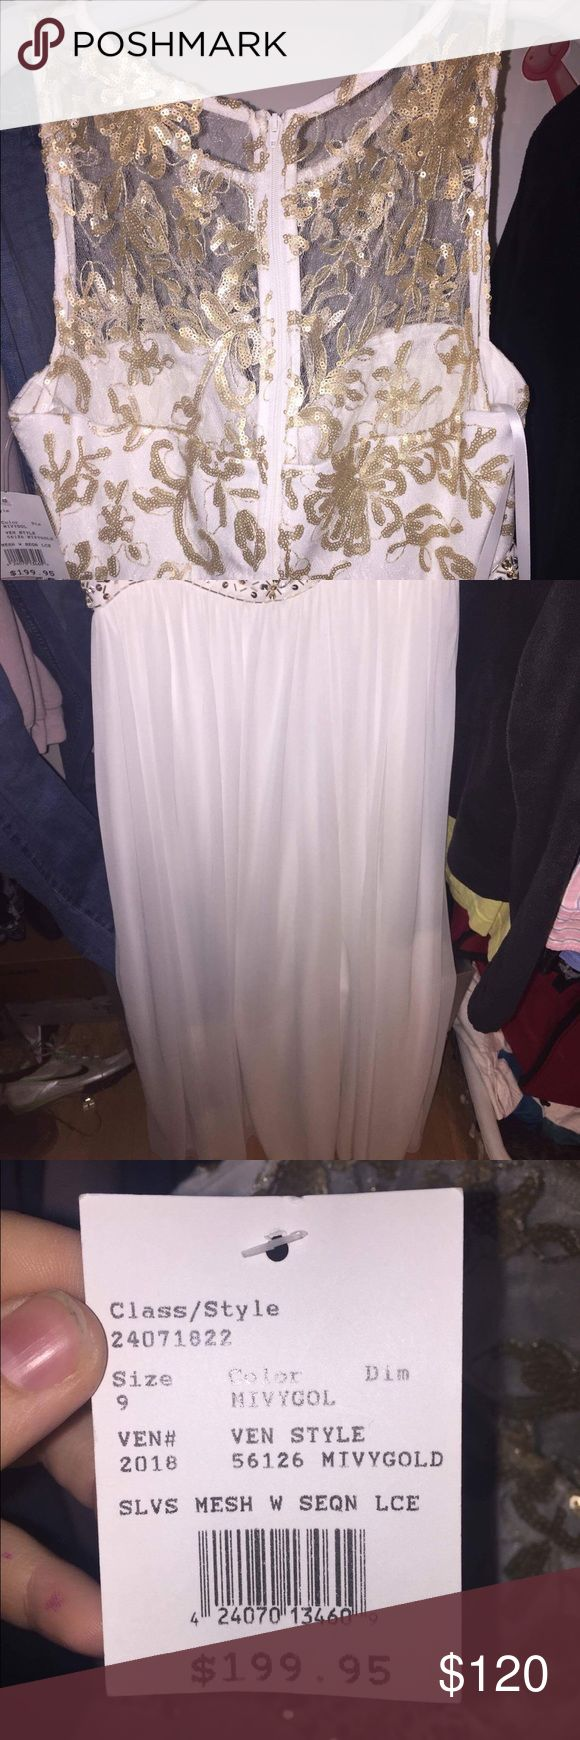 Davids Bridal Prom Dress 2017 White and gold. Gold is sparkly. Never worn. Bought for $200 want at least $120. Willing to negotiate. Size 9 but fits about a 5/6. If local willing to meet. Comes w dress bag David's Bridal Dresses Prom